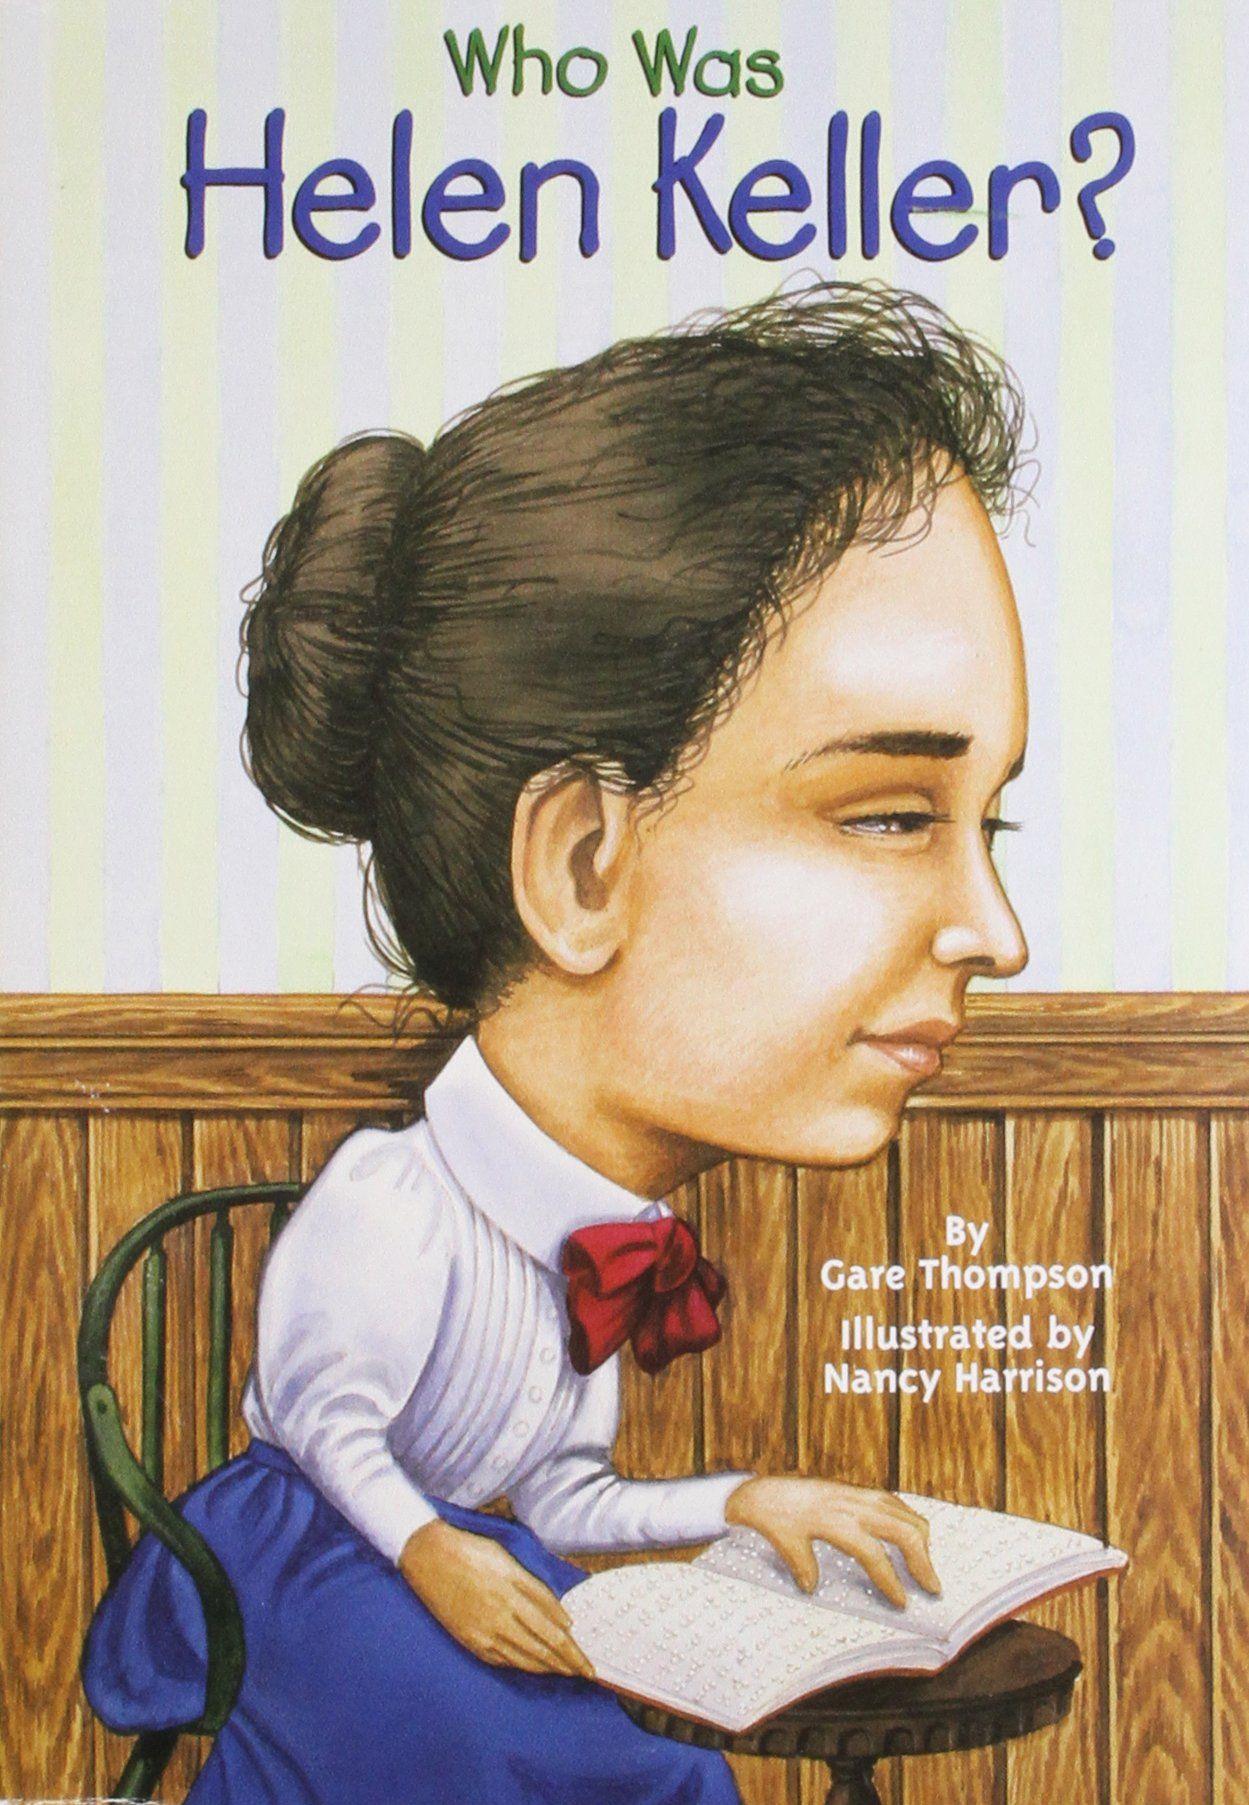 This Book Teaches About Helen Keller And Is A Great Tool